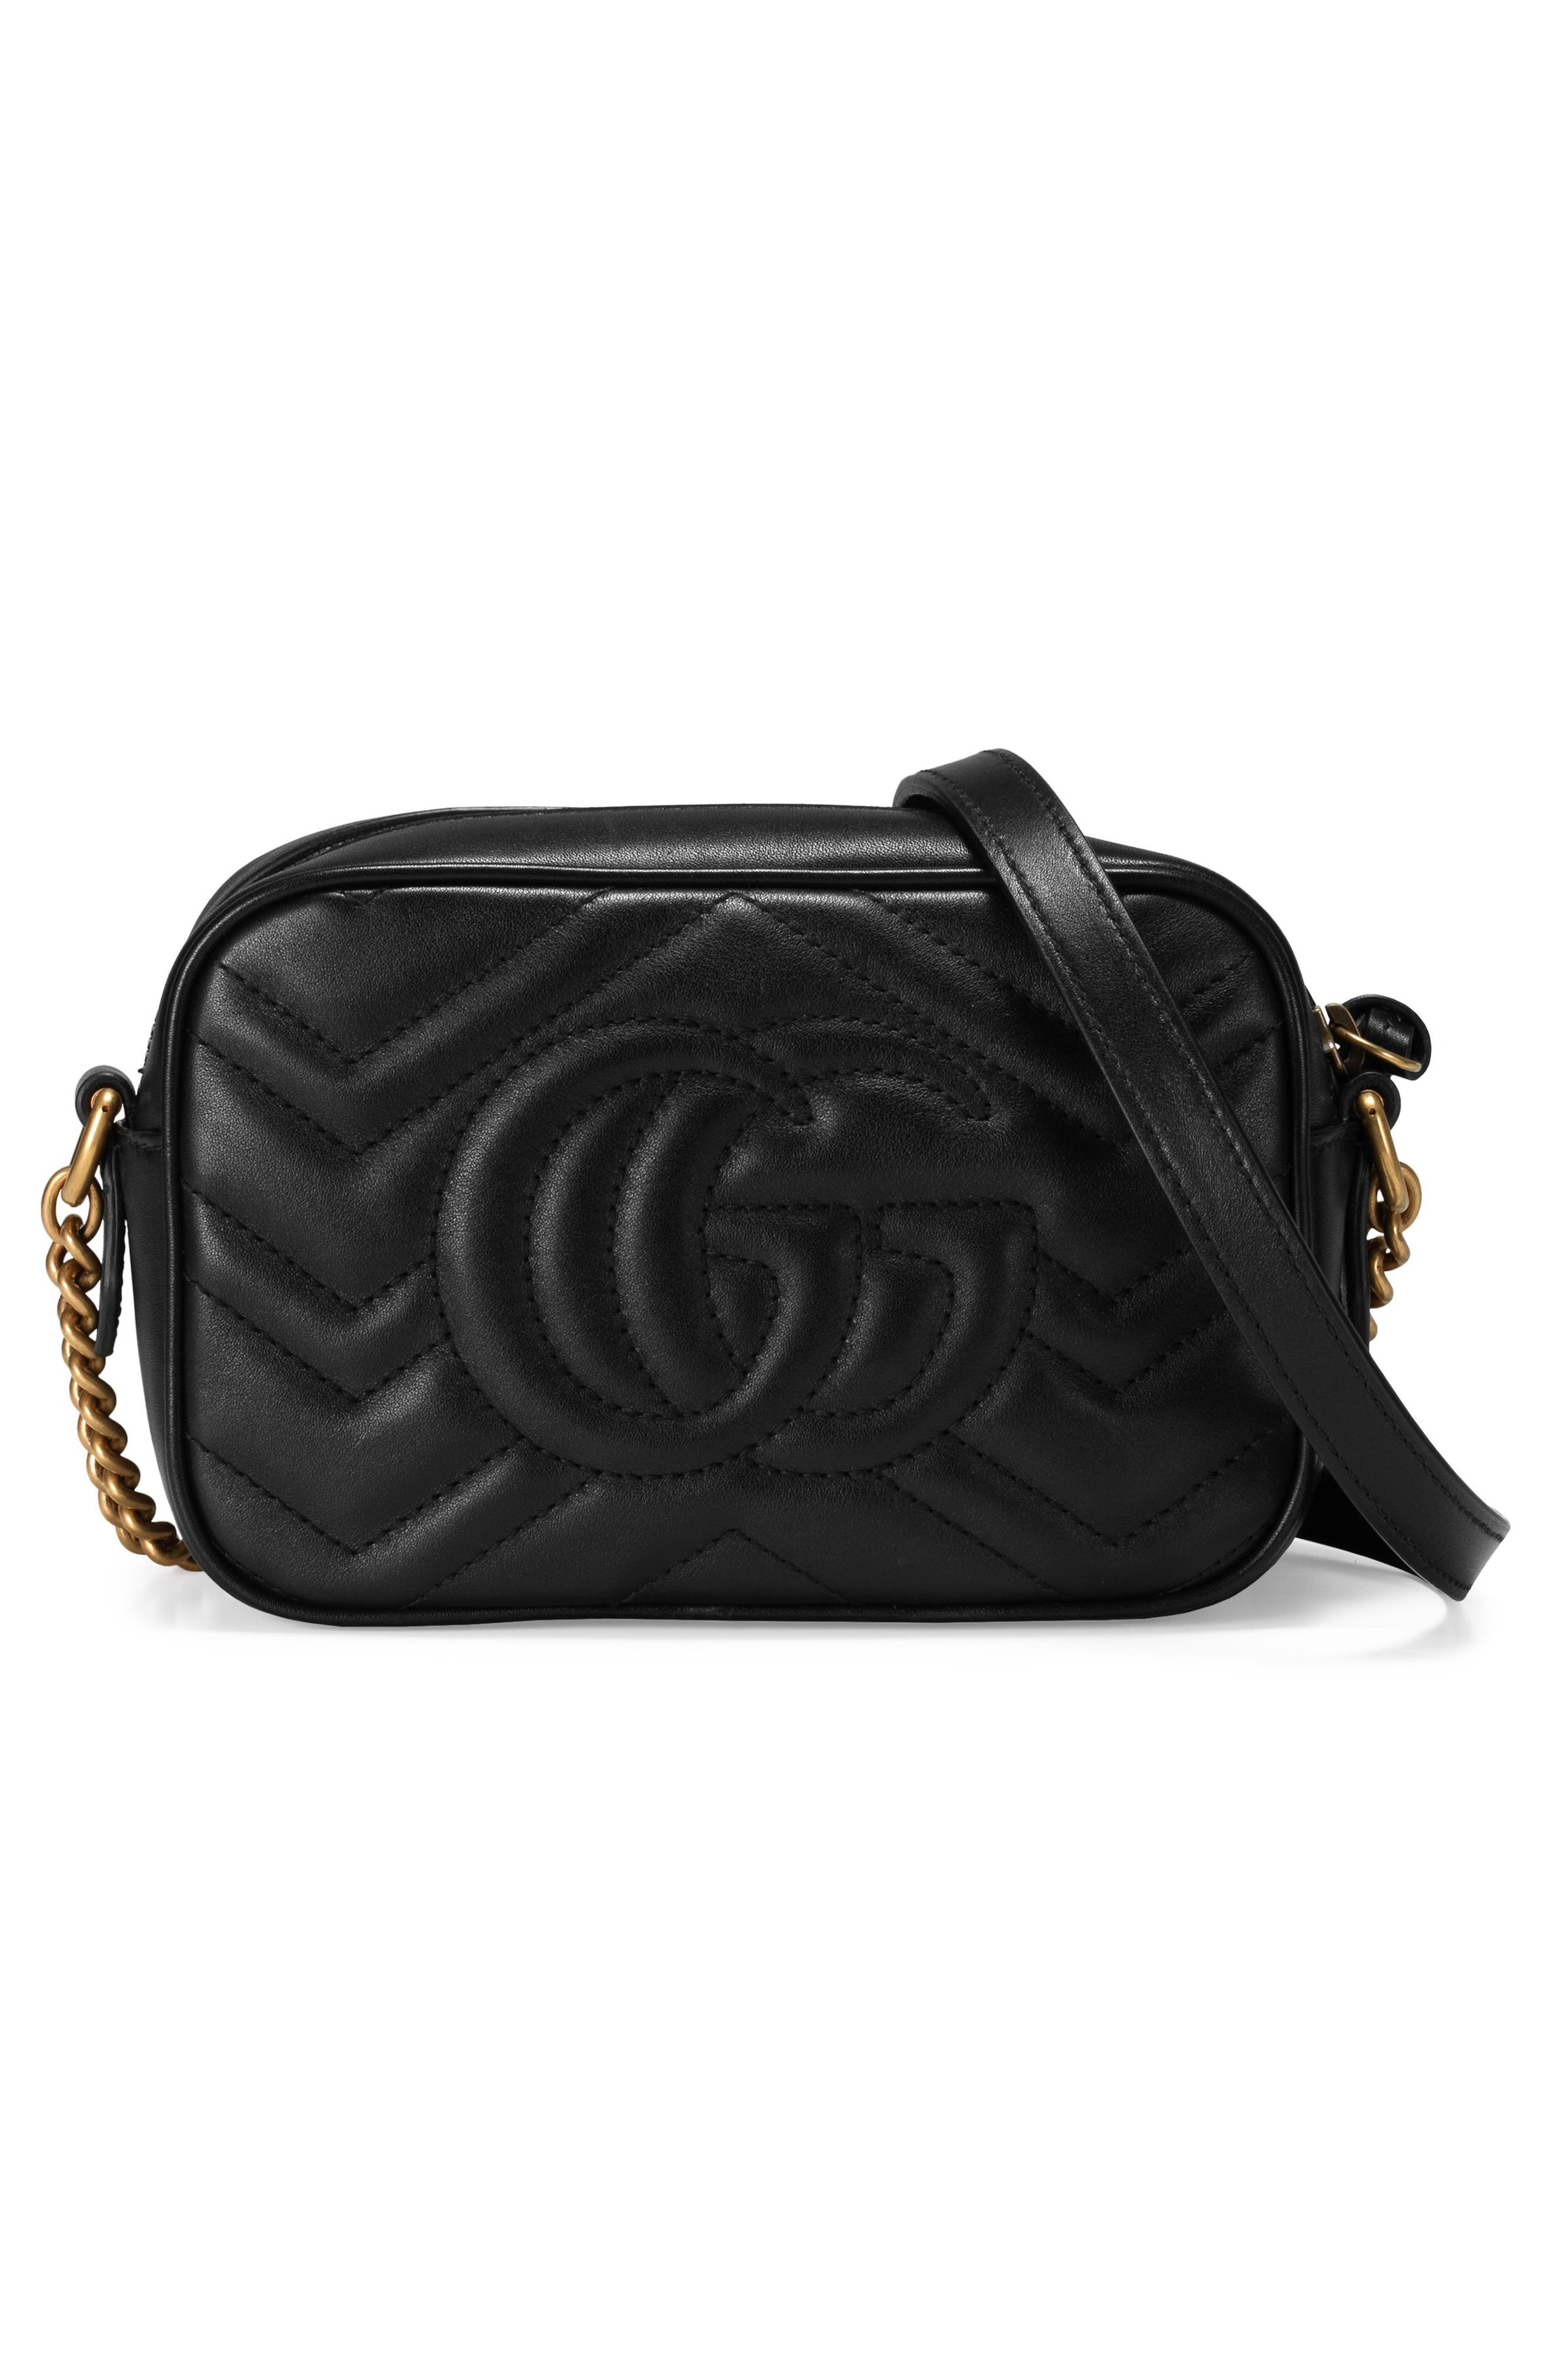 GG Marmont 2.0 Matelassé Leather Shoulder Bag,                             Alternate thumbnail 3, color,                             NERO